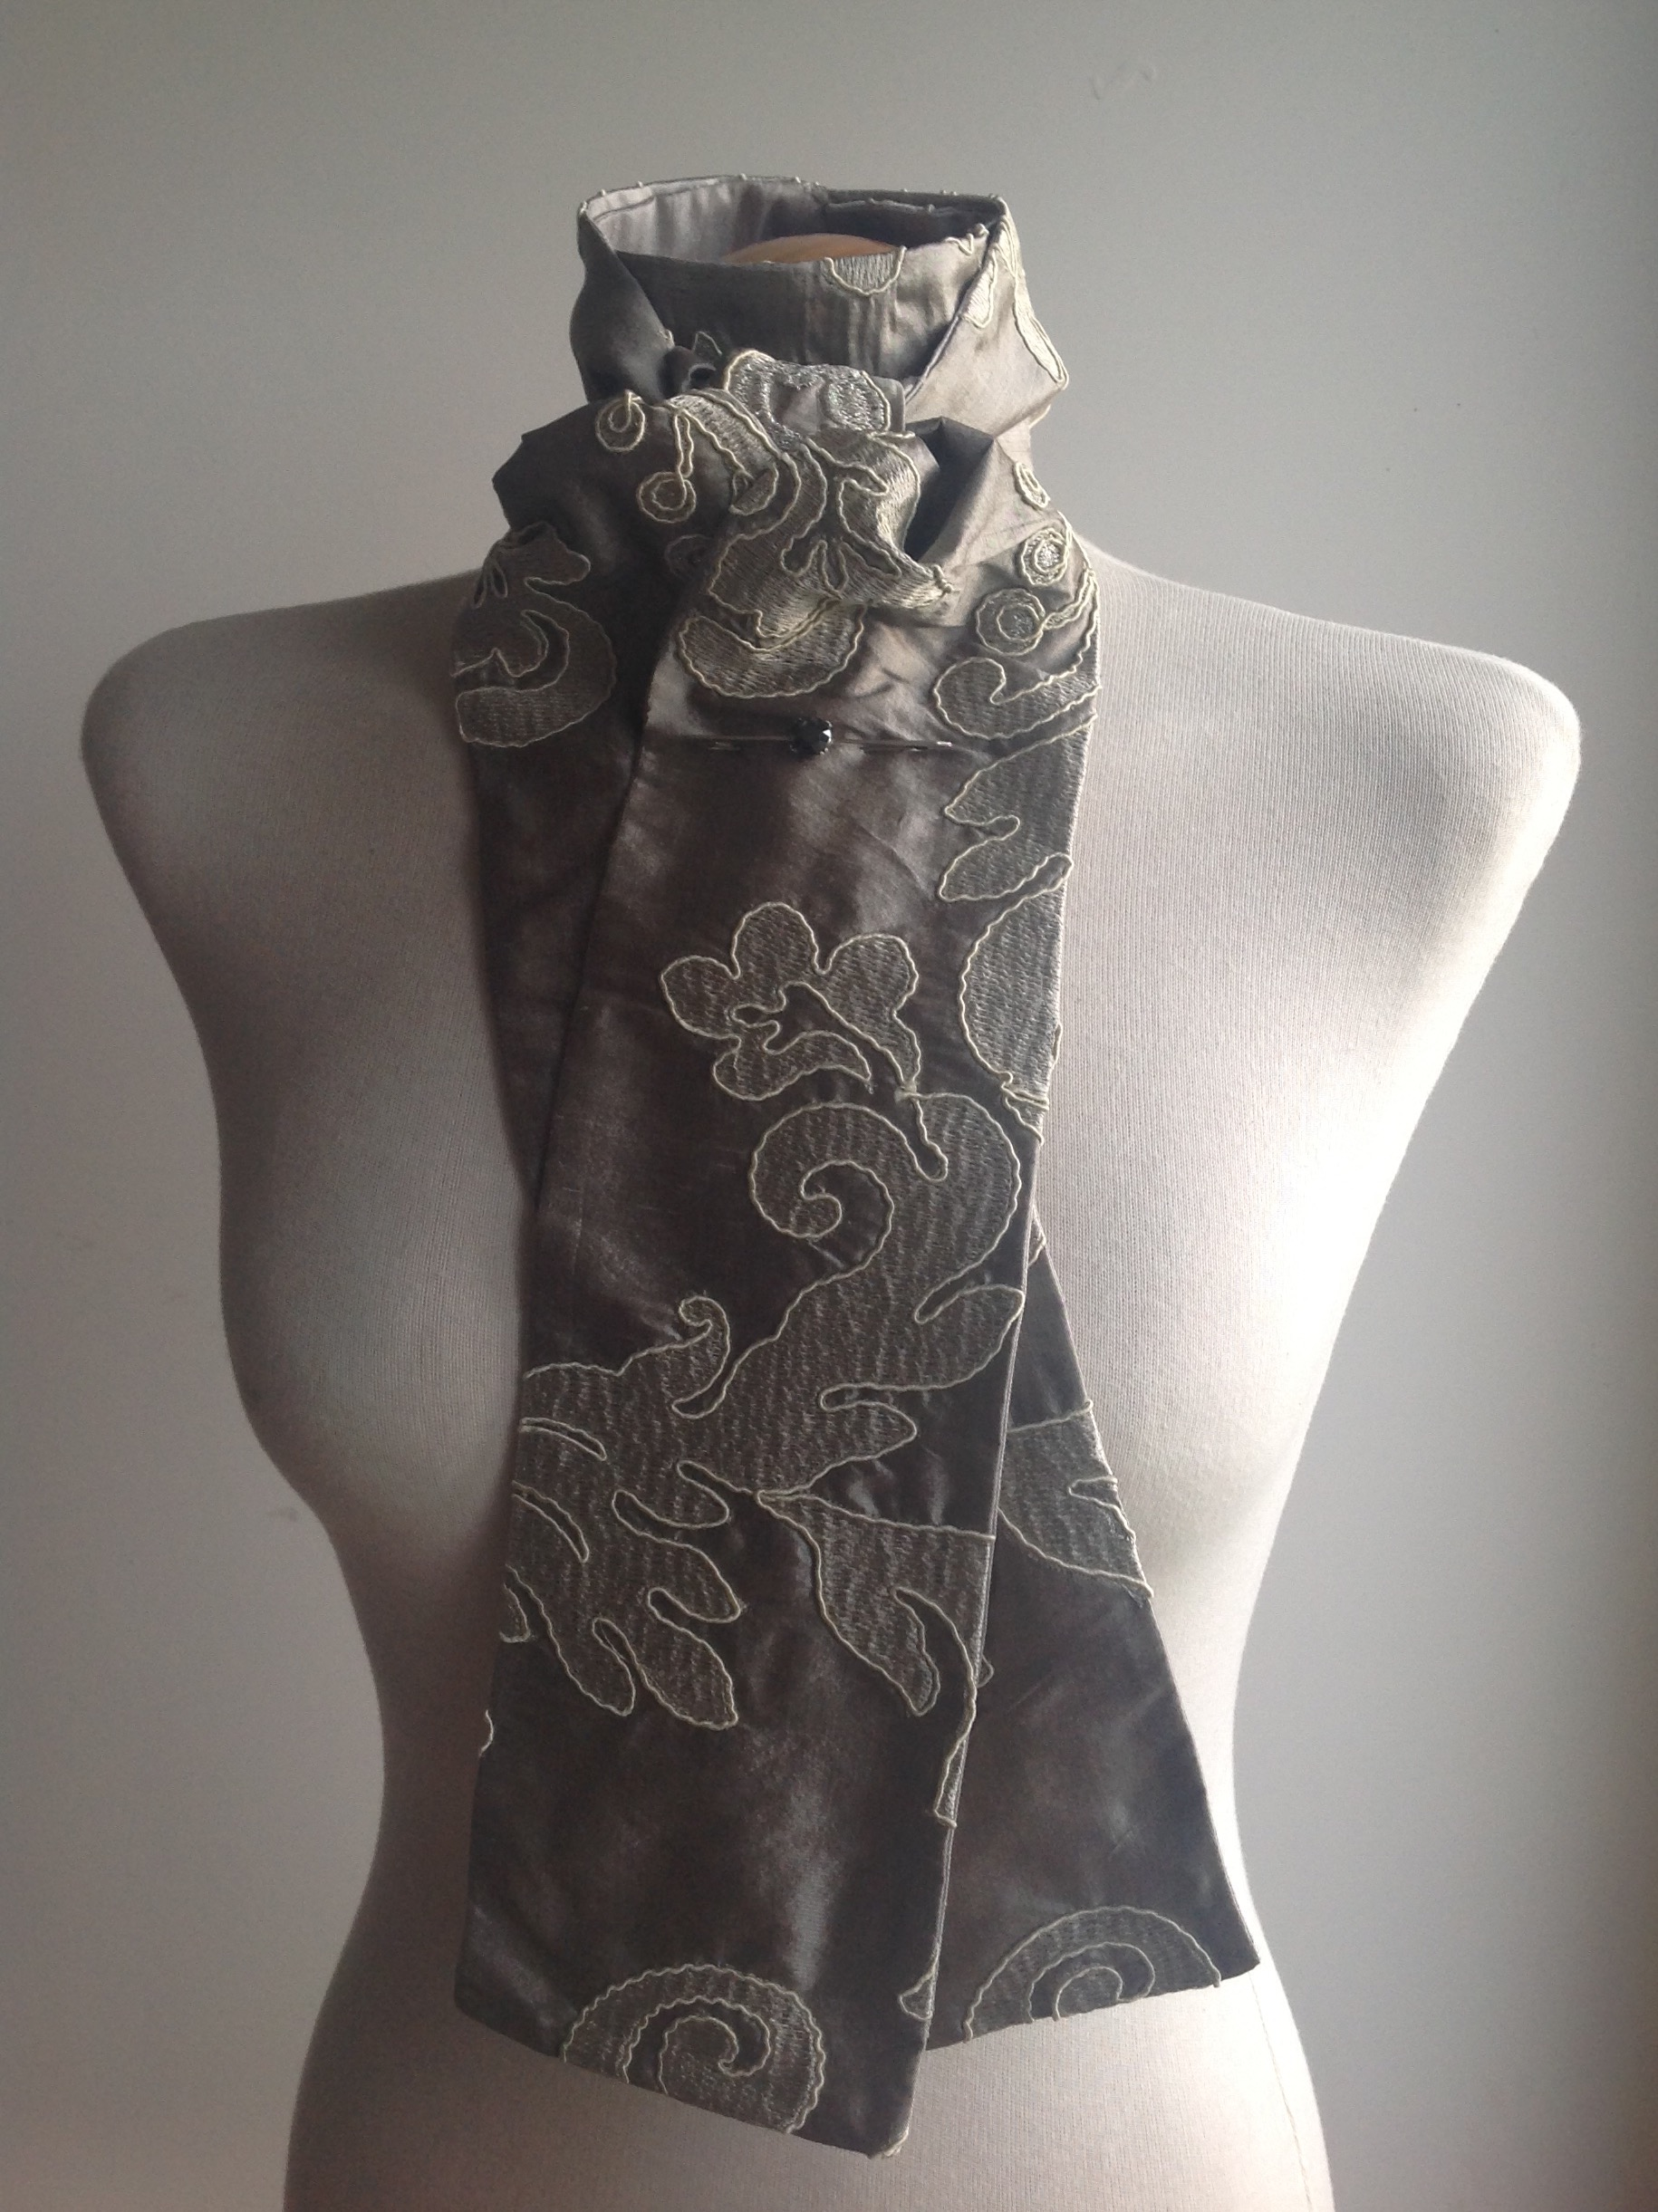 Shaped to tie 100% silk stock - pewter heavyweight Baroque floral embroidery